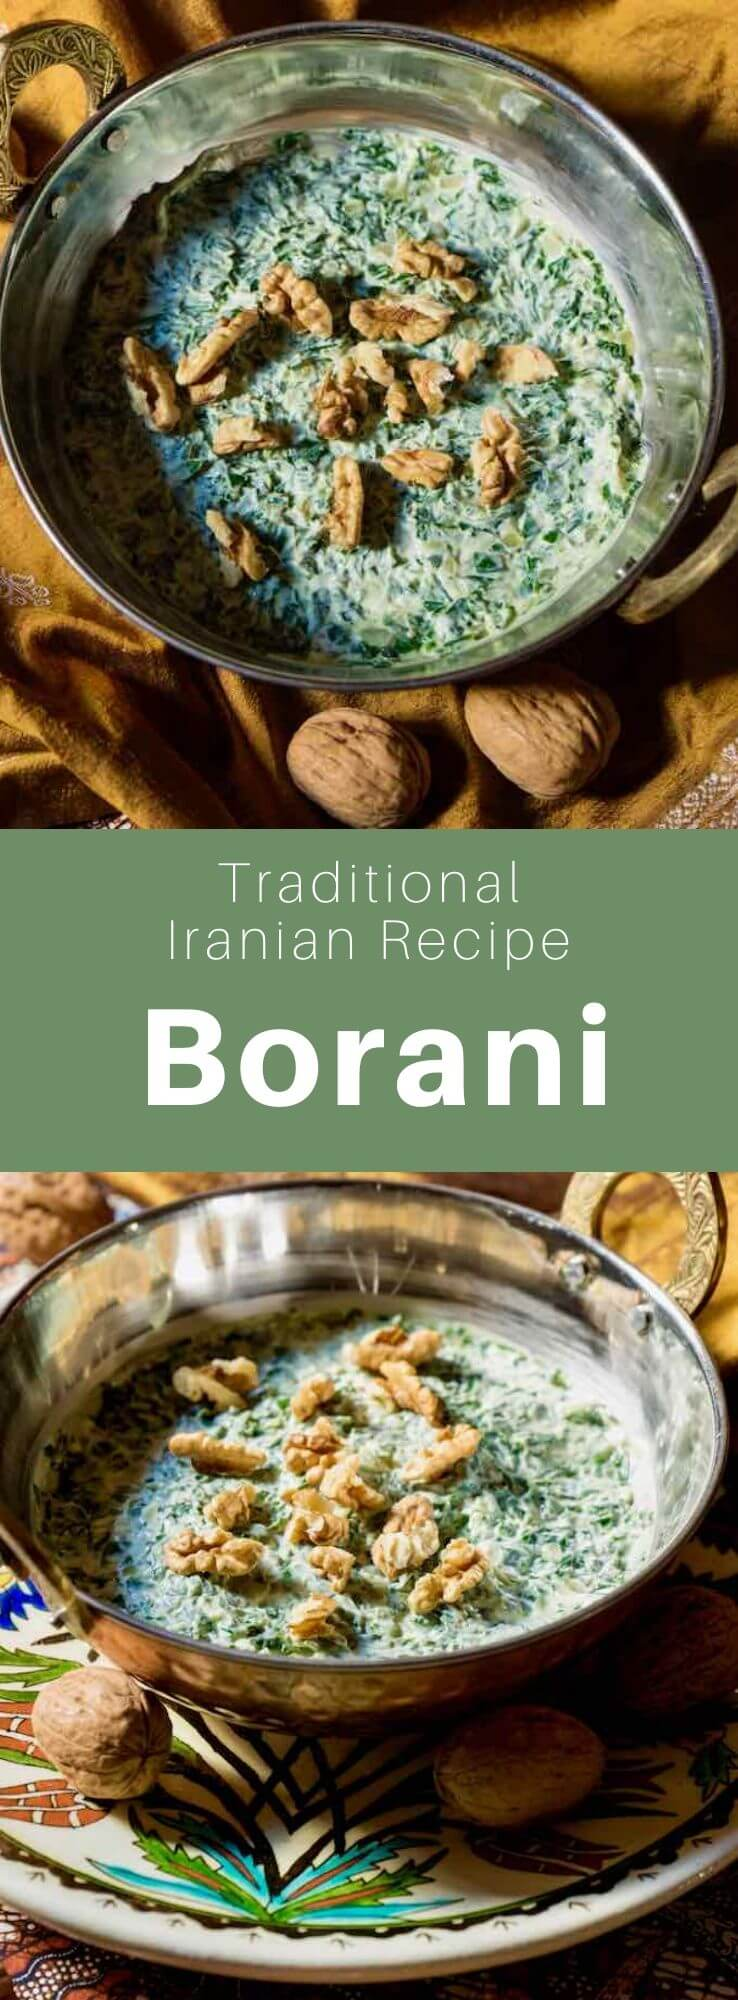 Borani is a traditional Iranian appetizer, that is prepared with yogurt and spinach. It is also common in Persian Jewish cuisine and in Turkey. #Turkey #Turkish #TurkishRecipe #TurkishFood #TurkishCuisine #WorldCuisine #196flavors